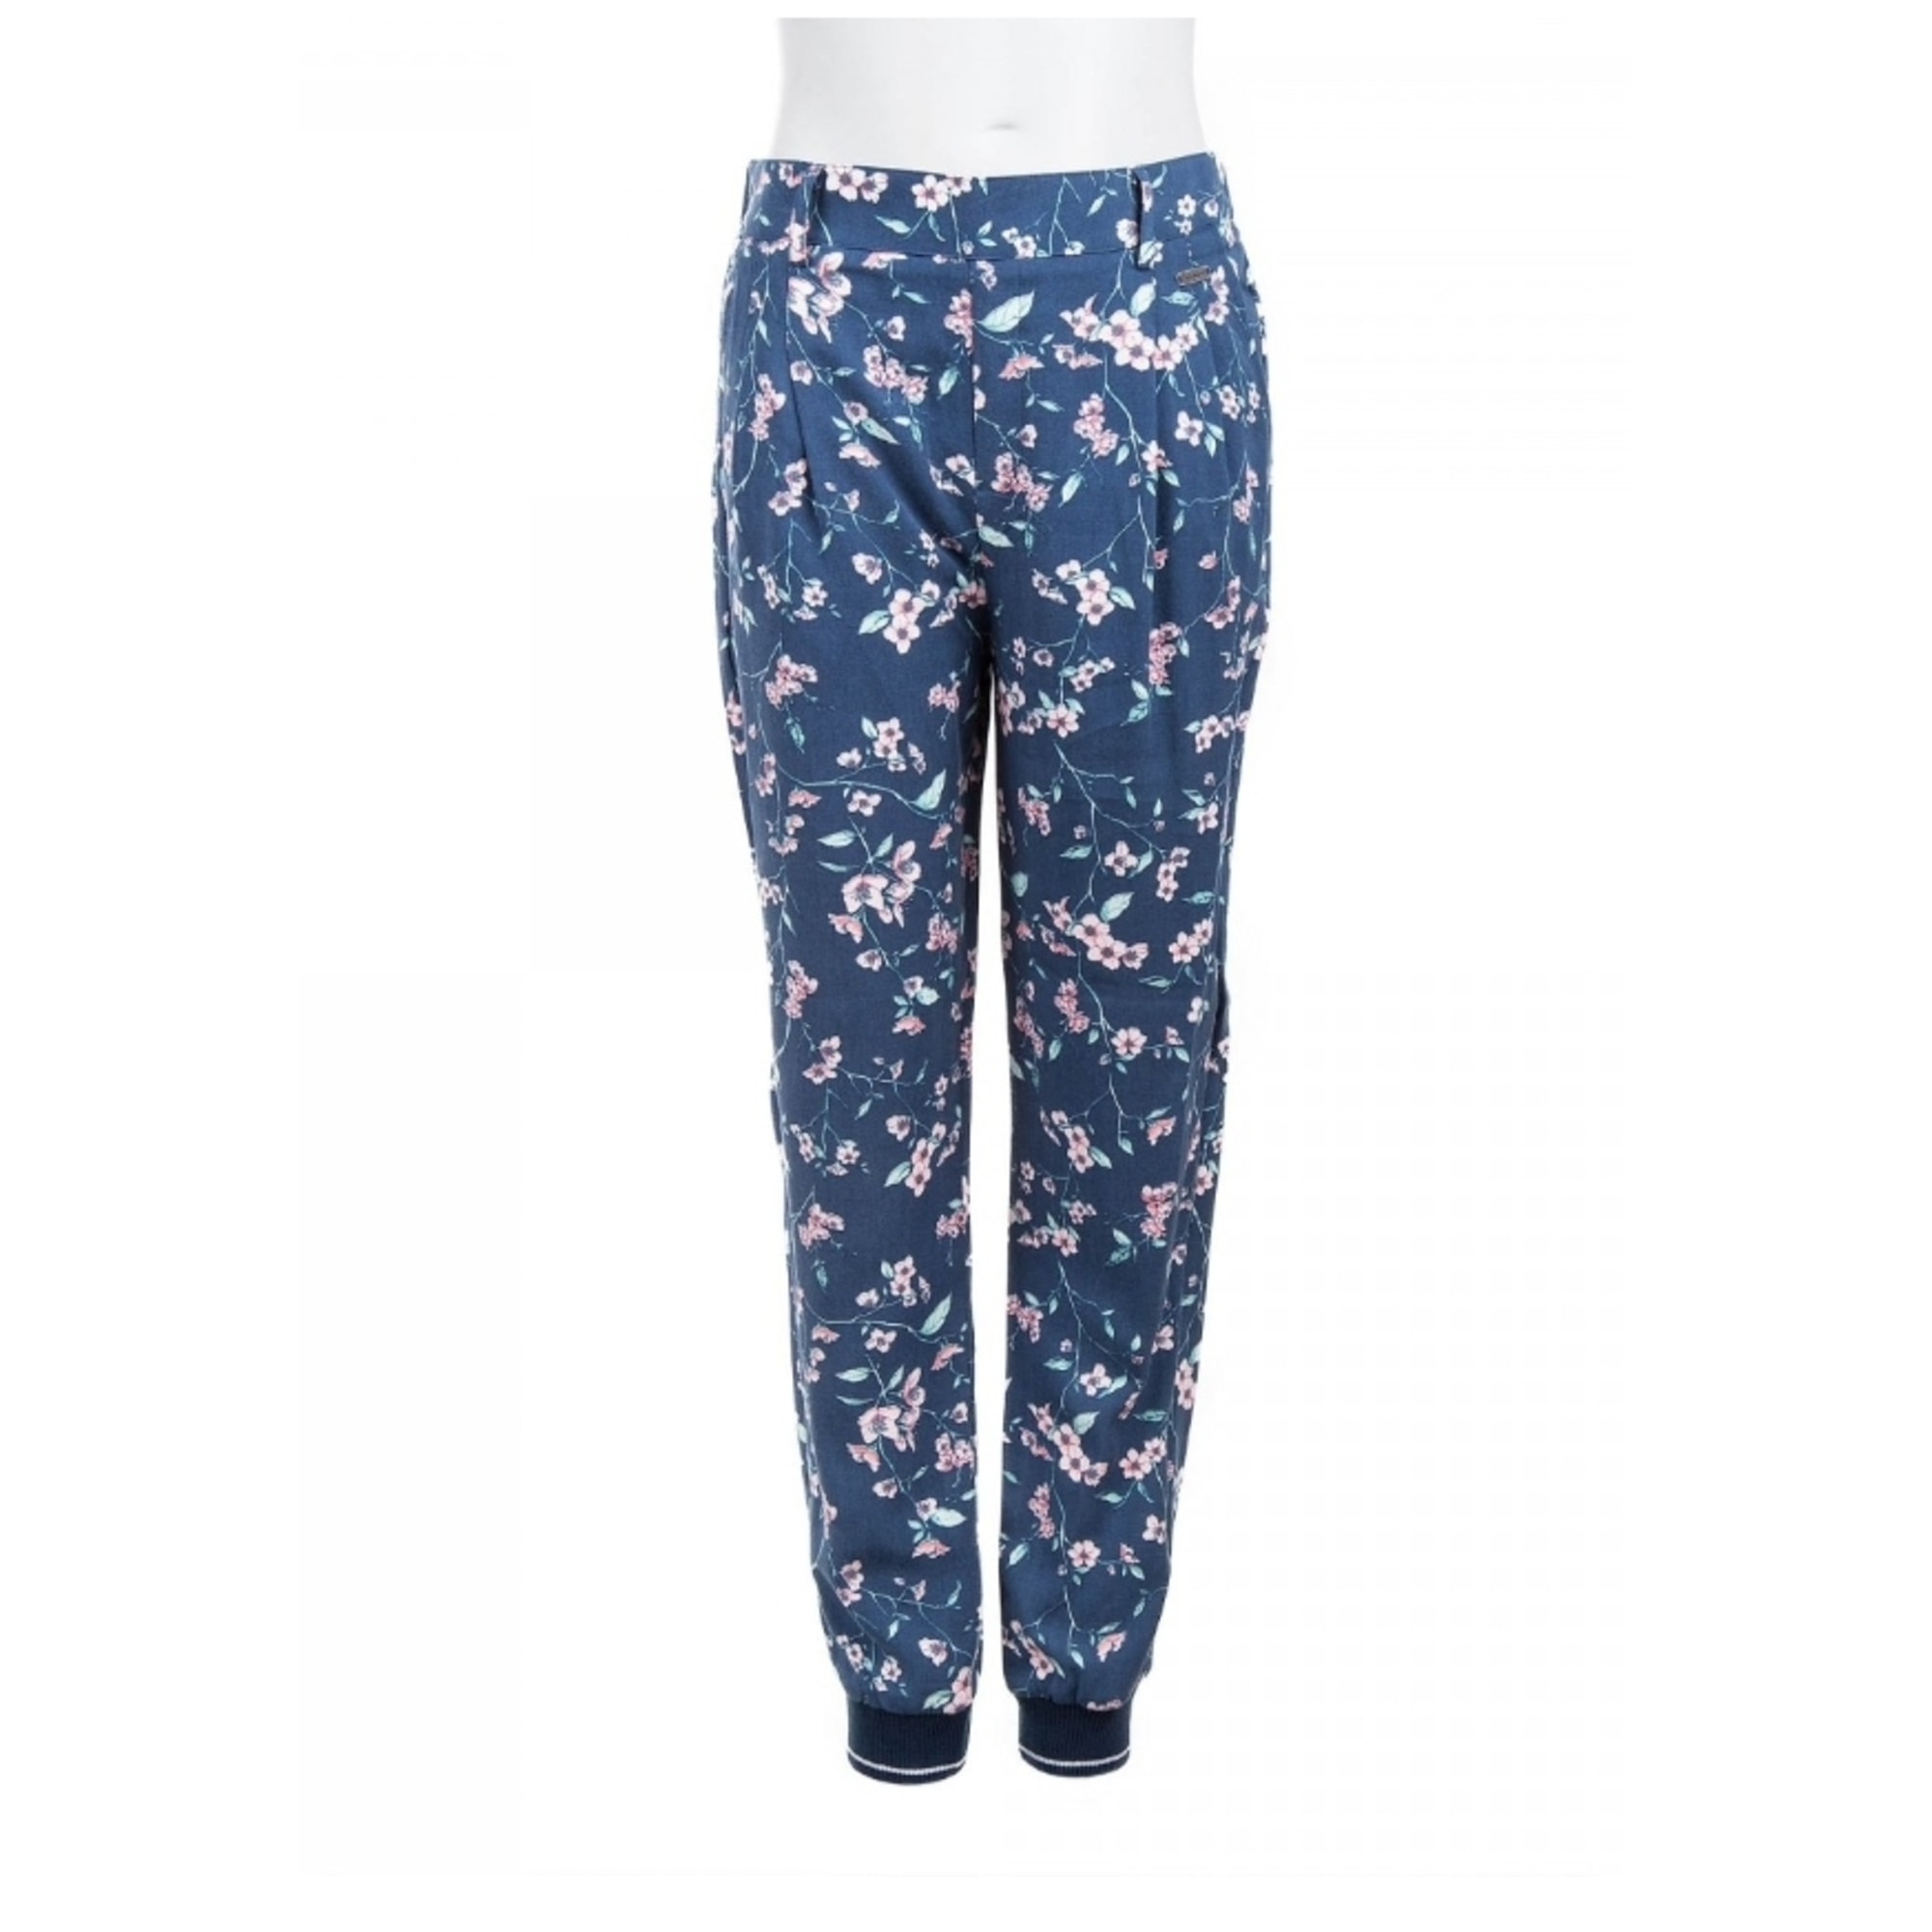 Tapered Pants PEPE JEANS Blue, navy, turquoise